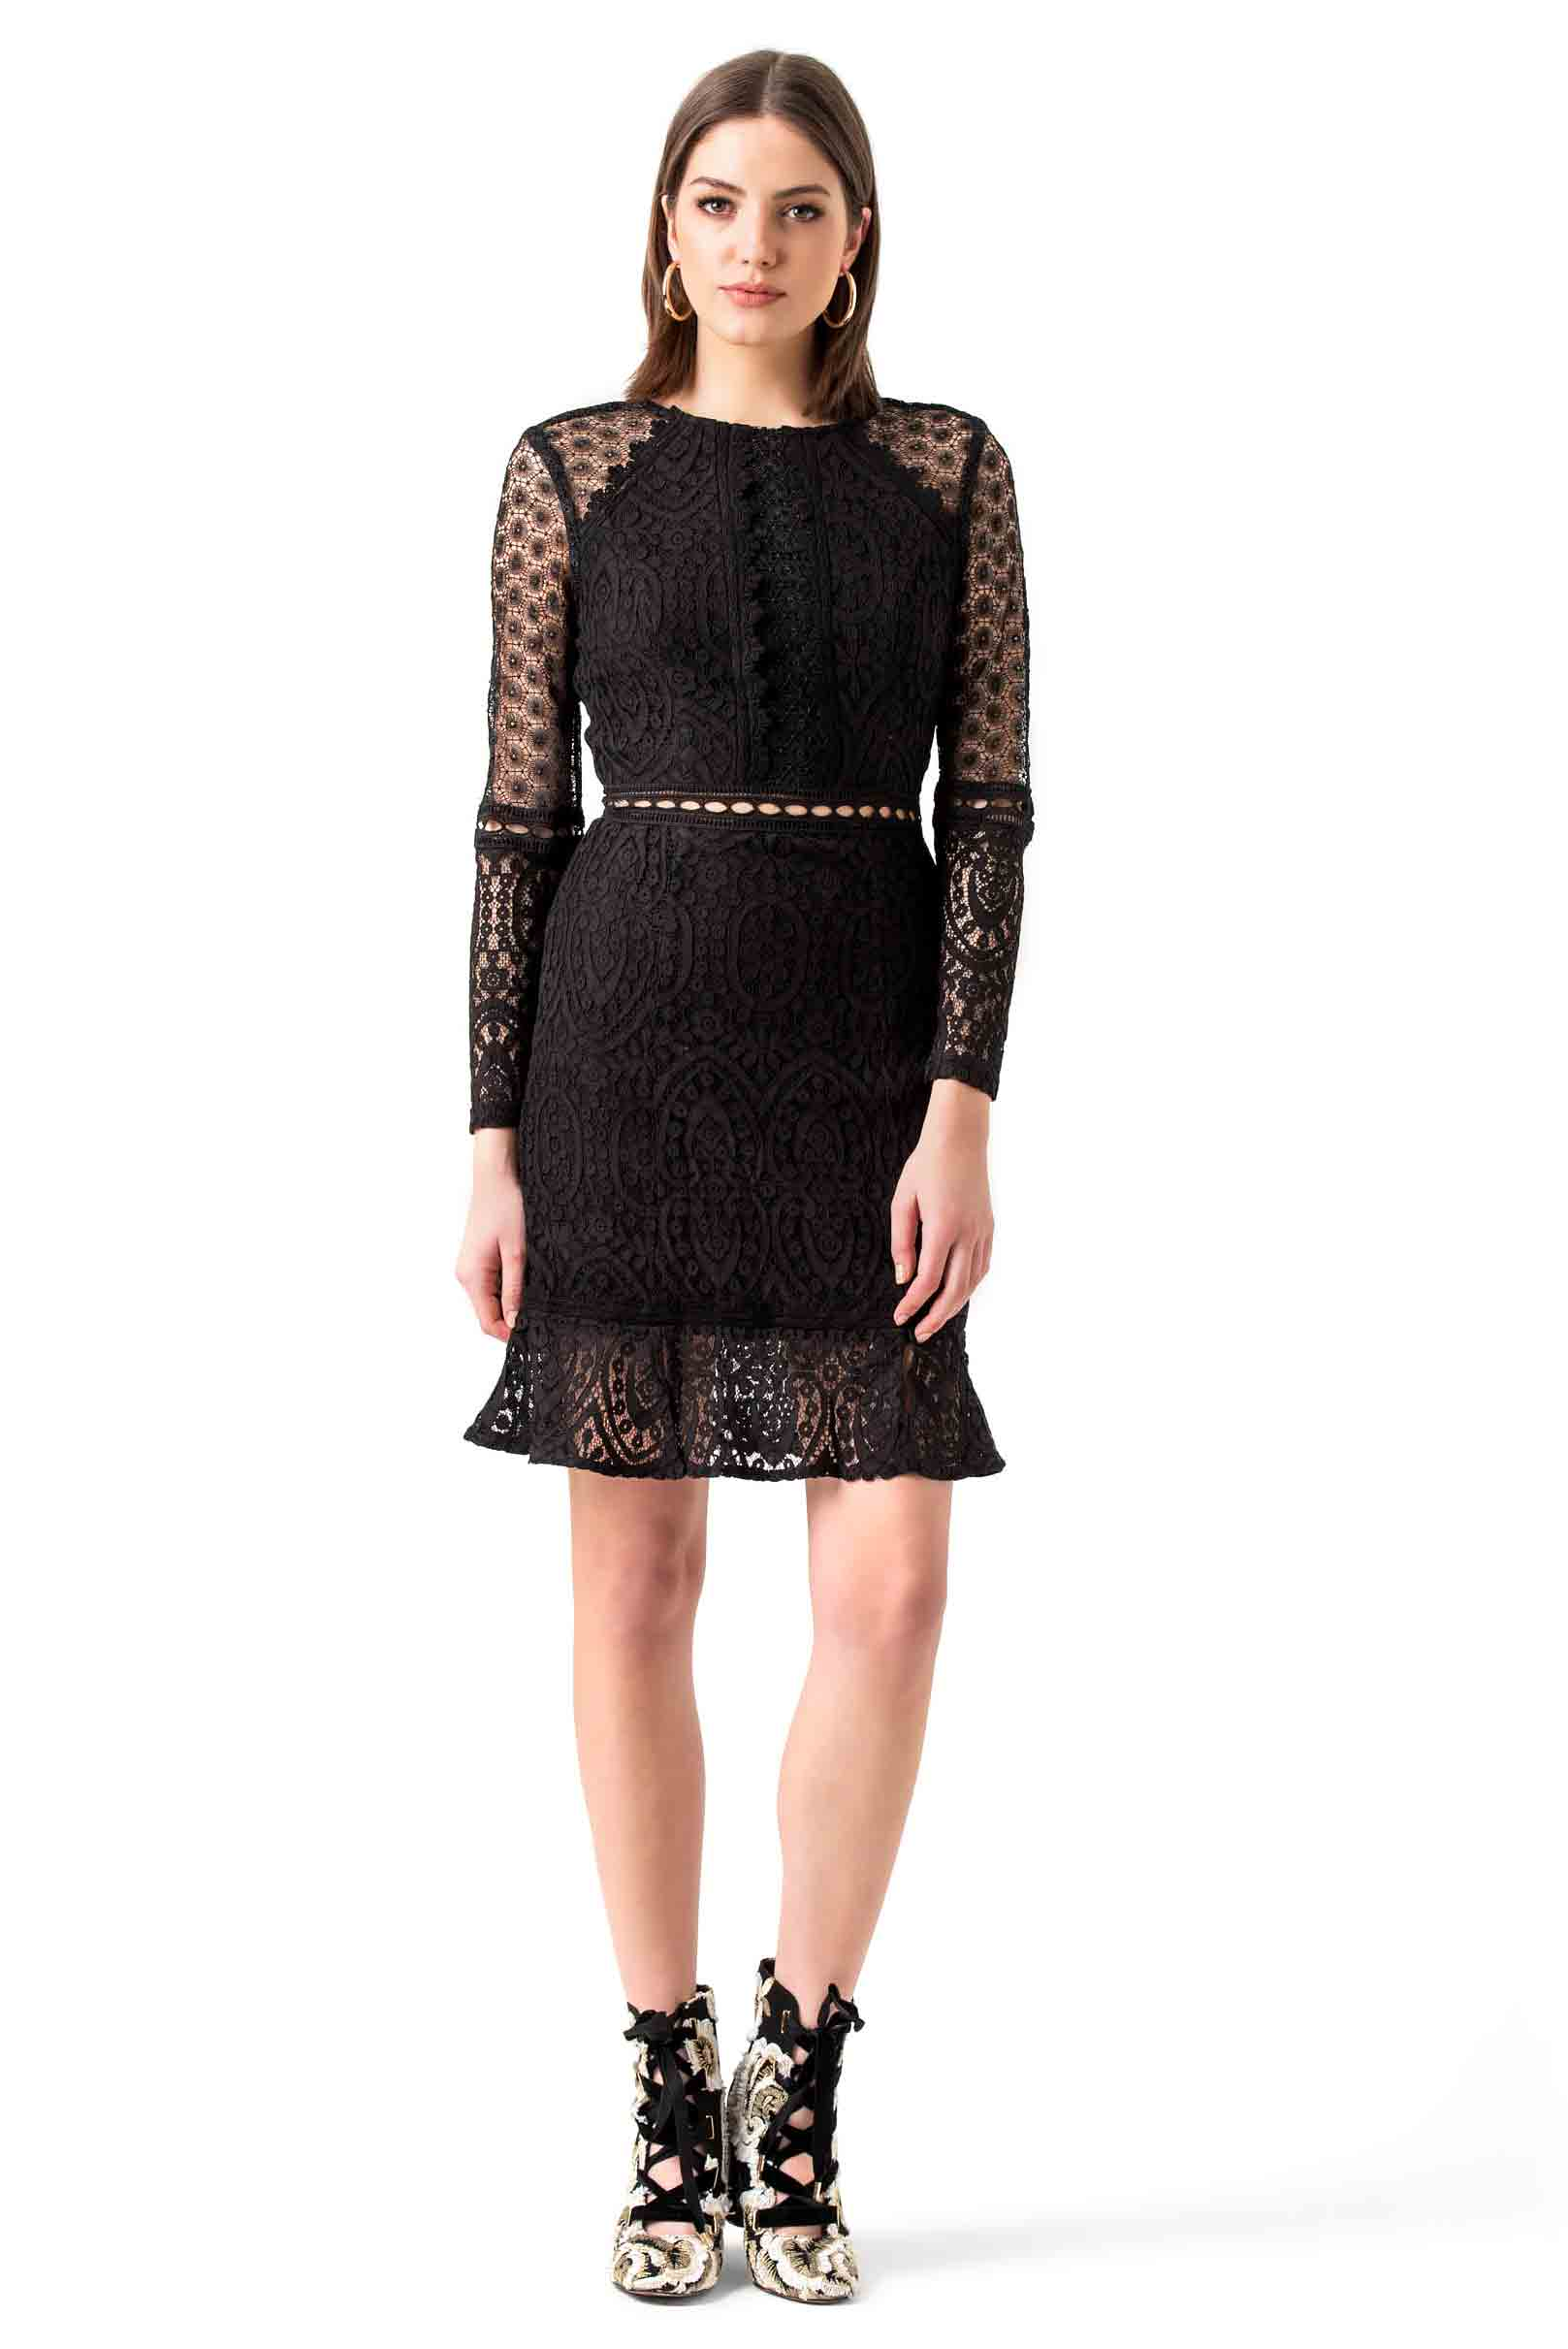 True Decadence Black Mesh Mini Dress